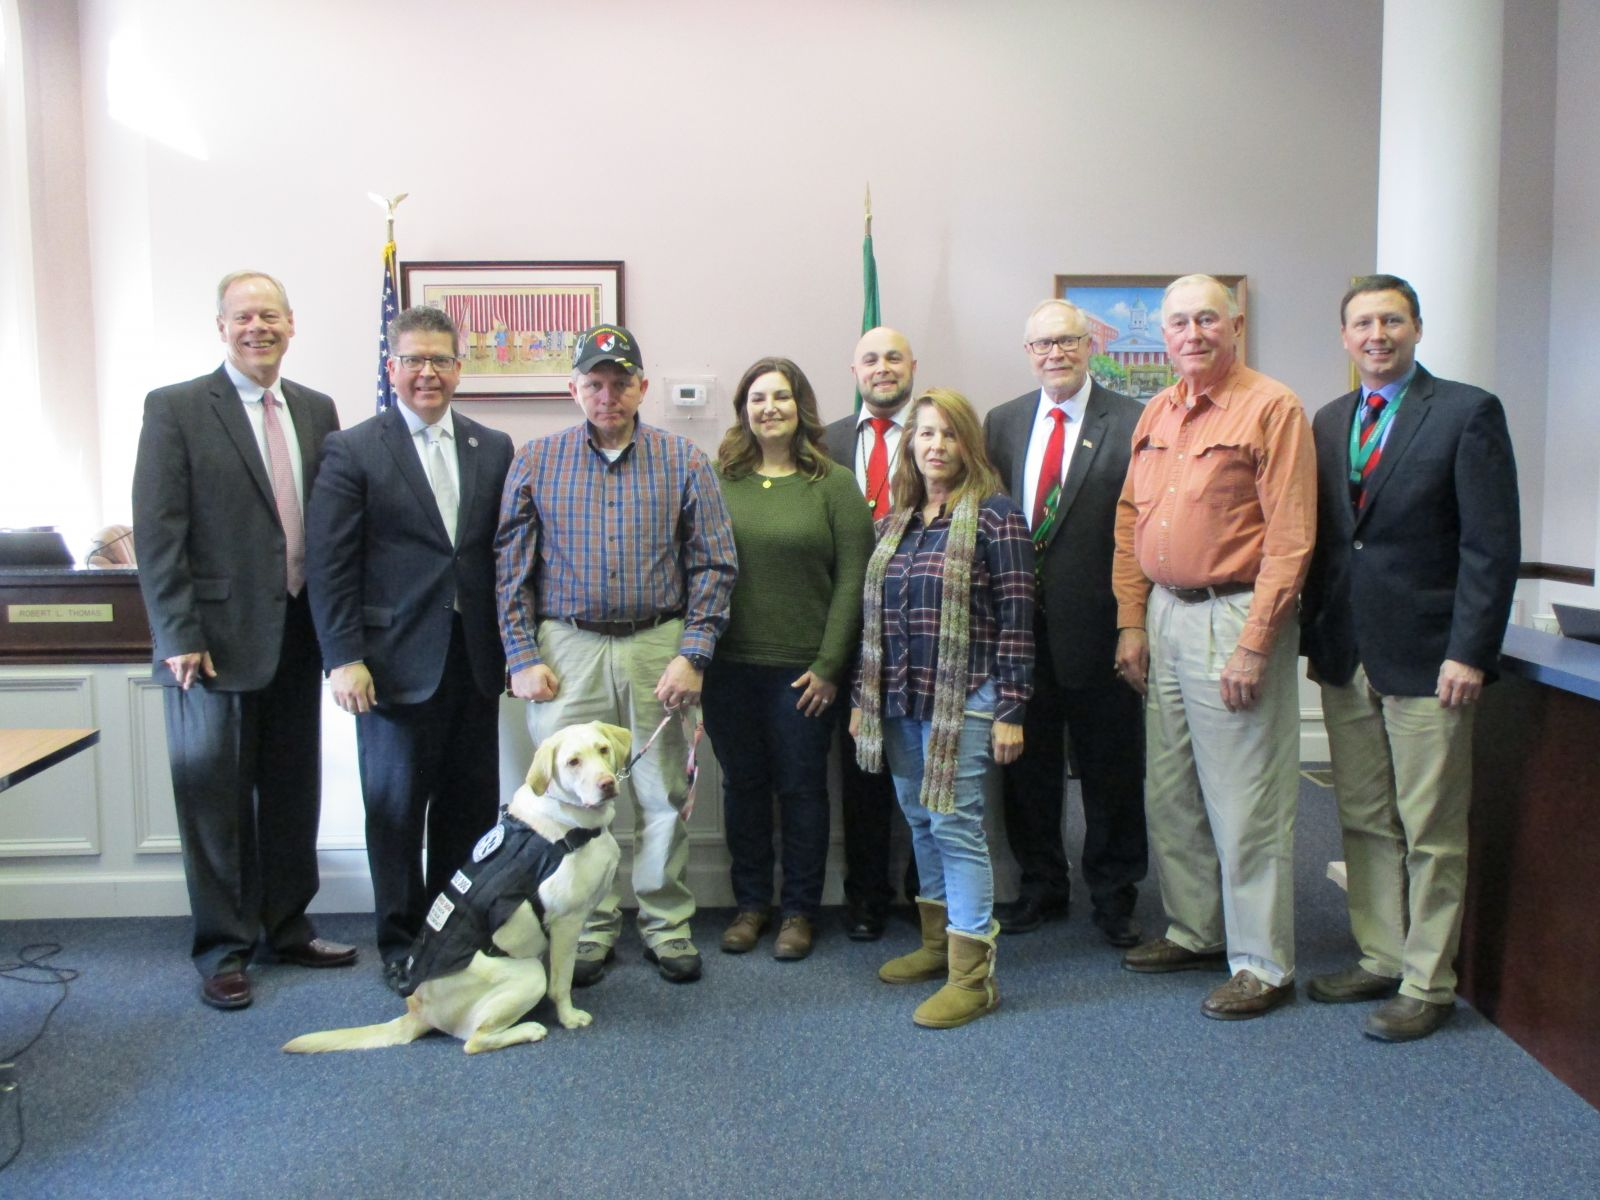 Picture (from left to right): Commissioner Robert G. Ziobrowski, Chairman David S.  Keller, Veteran Johnny Gouge and his wife Jessica with Skylar, Veteran Affairs Director Justin Slep, Trainer Helen Carlson, Foster Parent Tom Kennedy, and Community Outreach and Events Coordinator John McPaul.